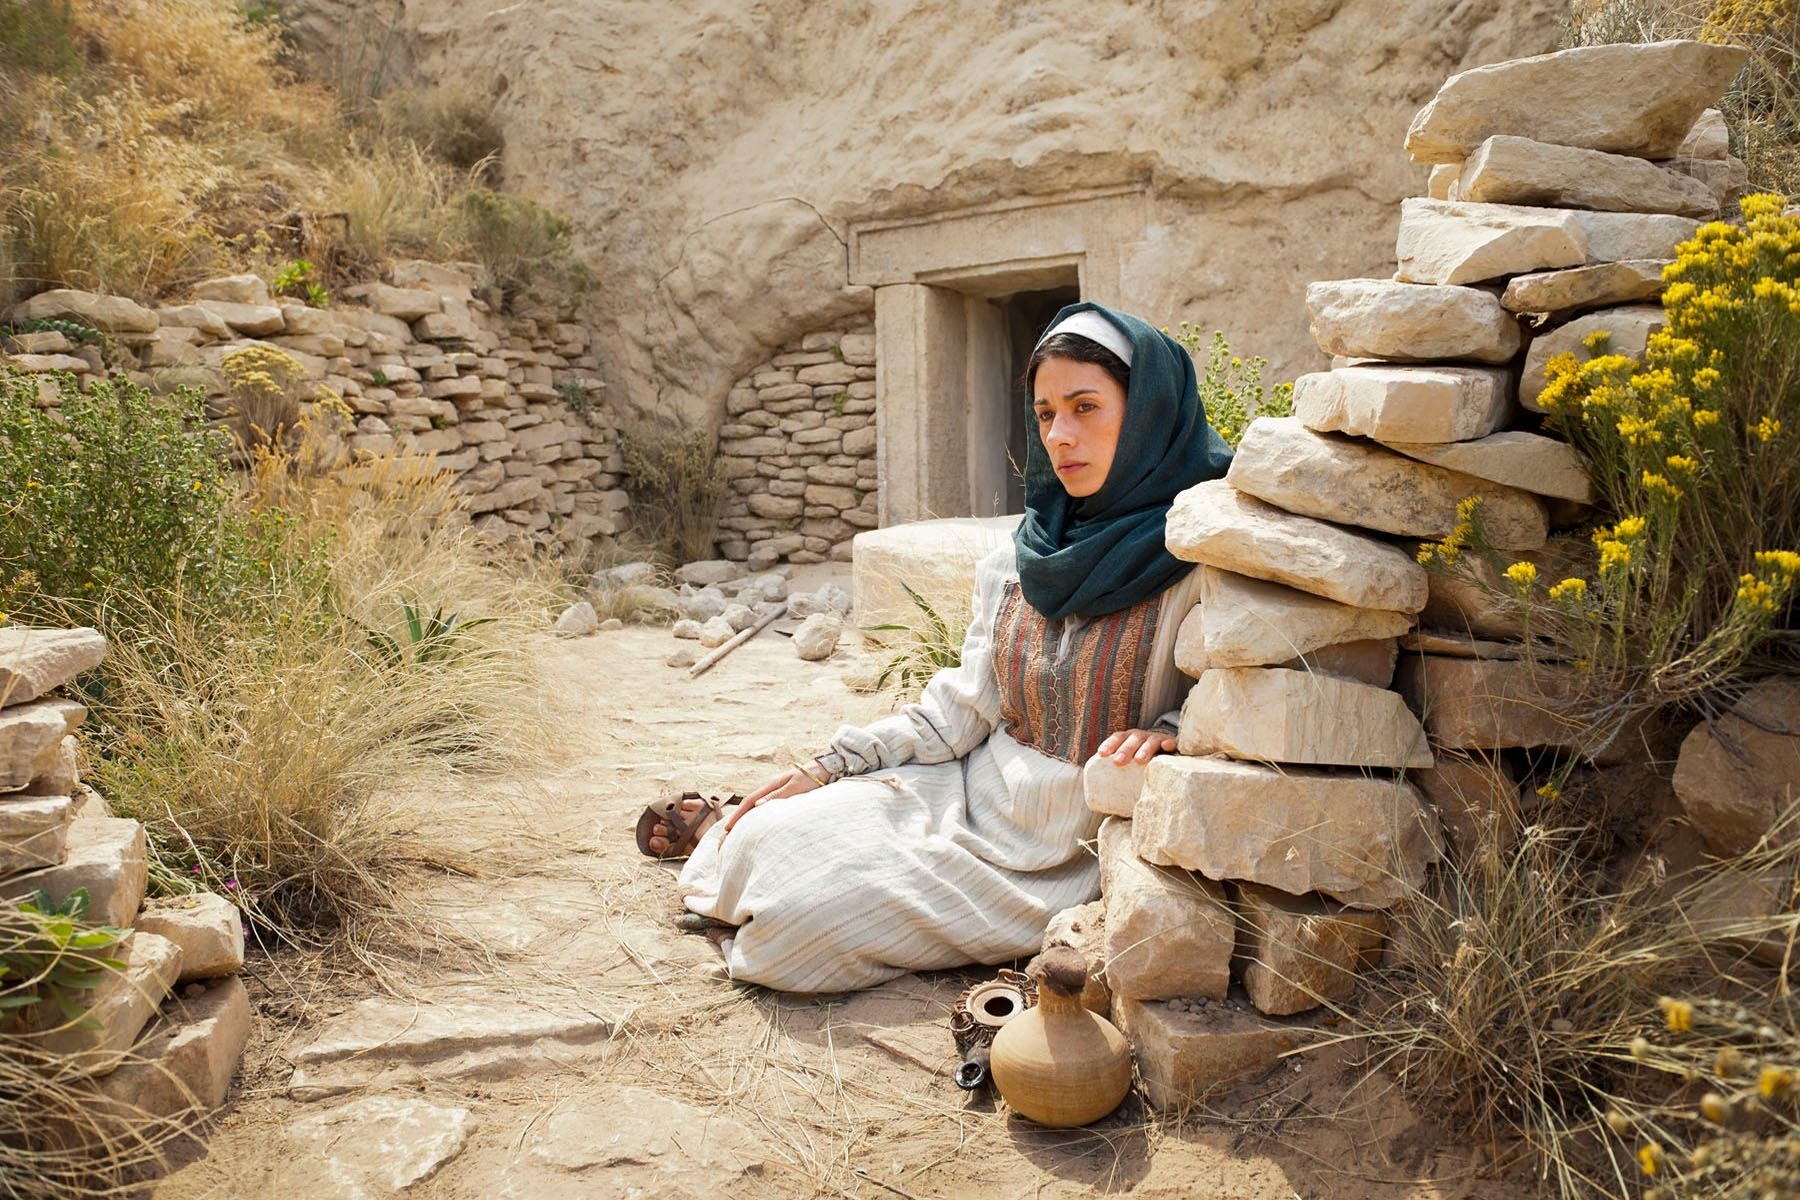 Mary Magdalene weeps after seeing that Christ's body is gone.